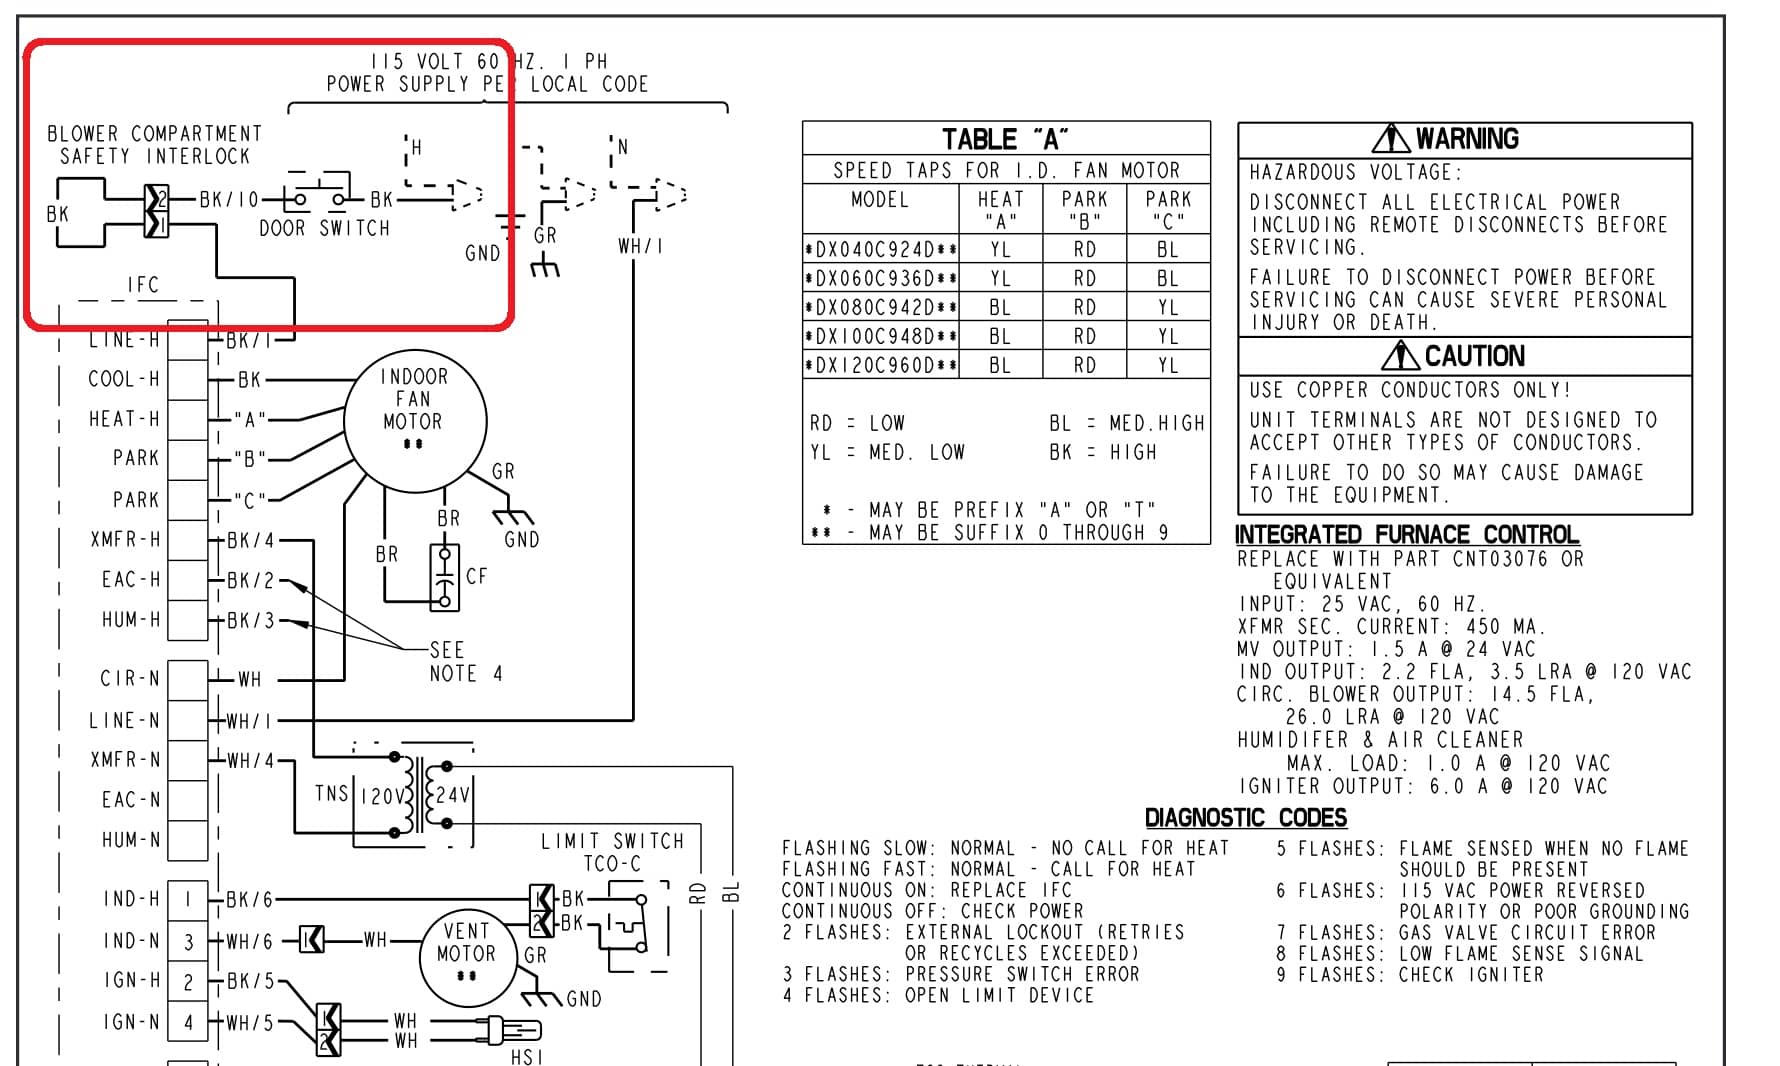 Wiring Diagram Atwood Furnace Bgmt Data Rv Trane Xl80 Parts Heat Pump Schematic For Furnaces